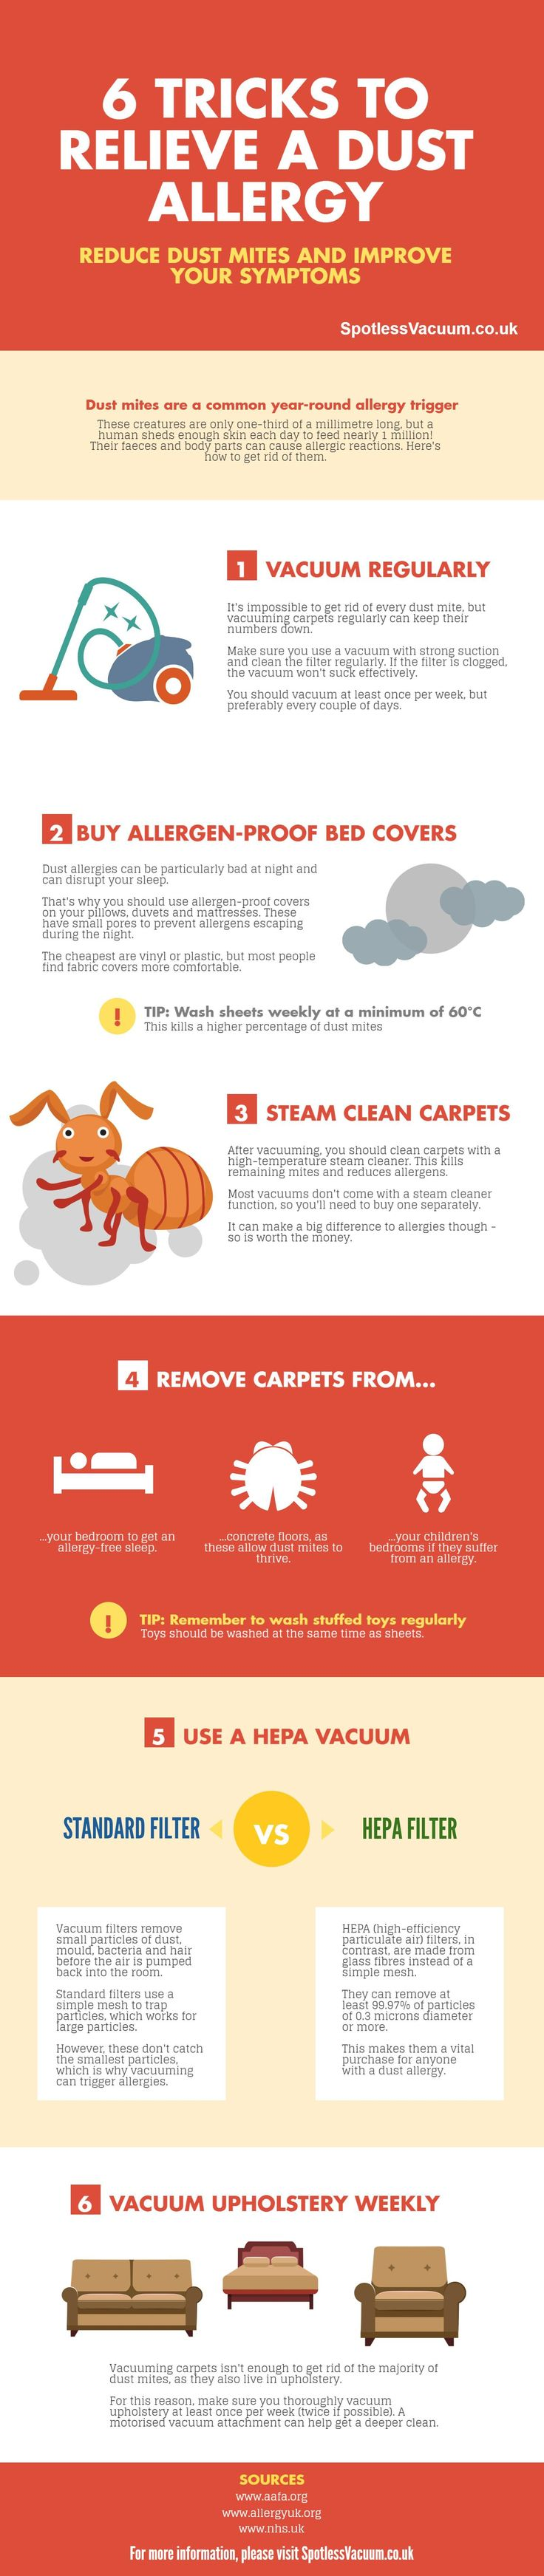 Infographic explaining how to relieve a dust mite allergy #allergies #allergy #dust #bugs